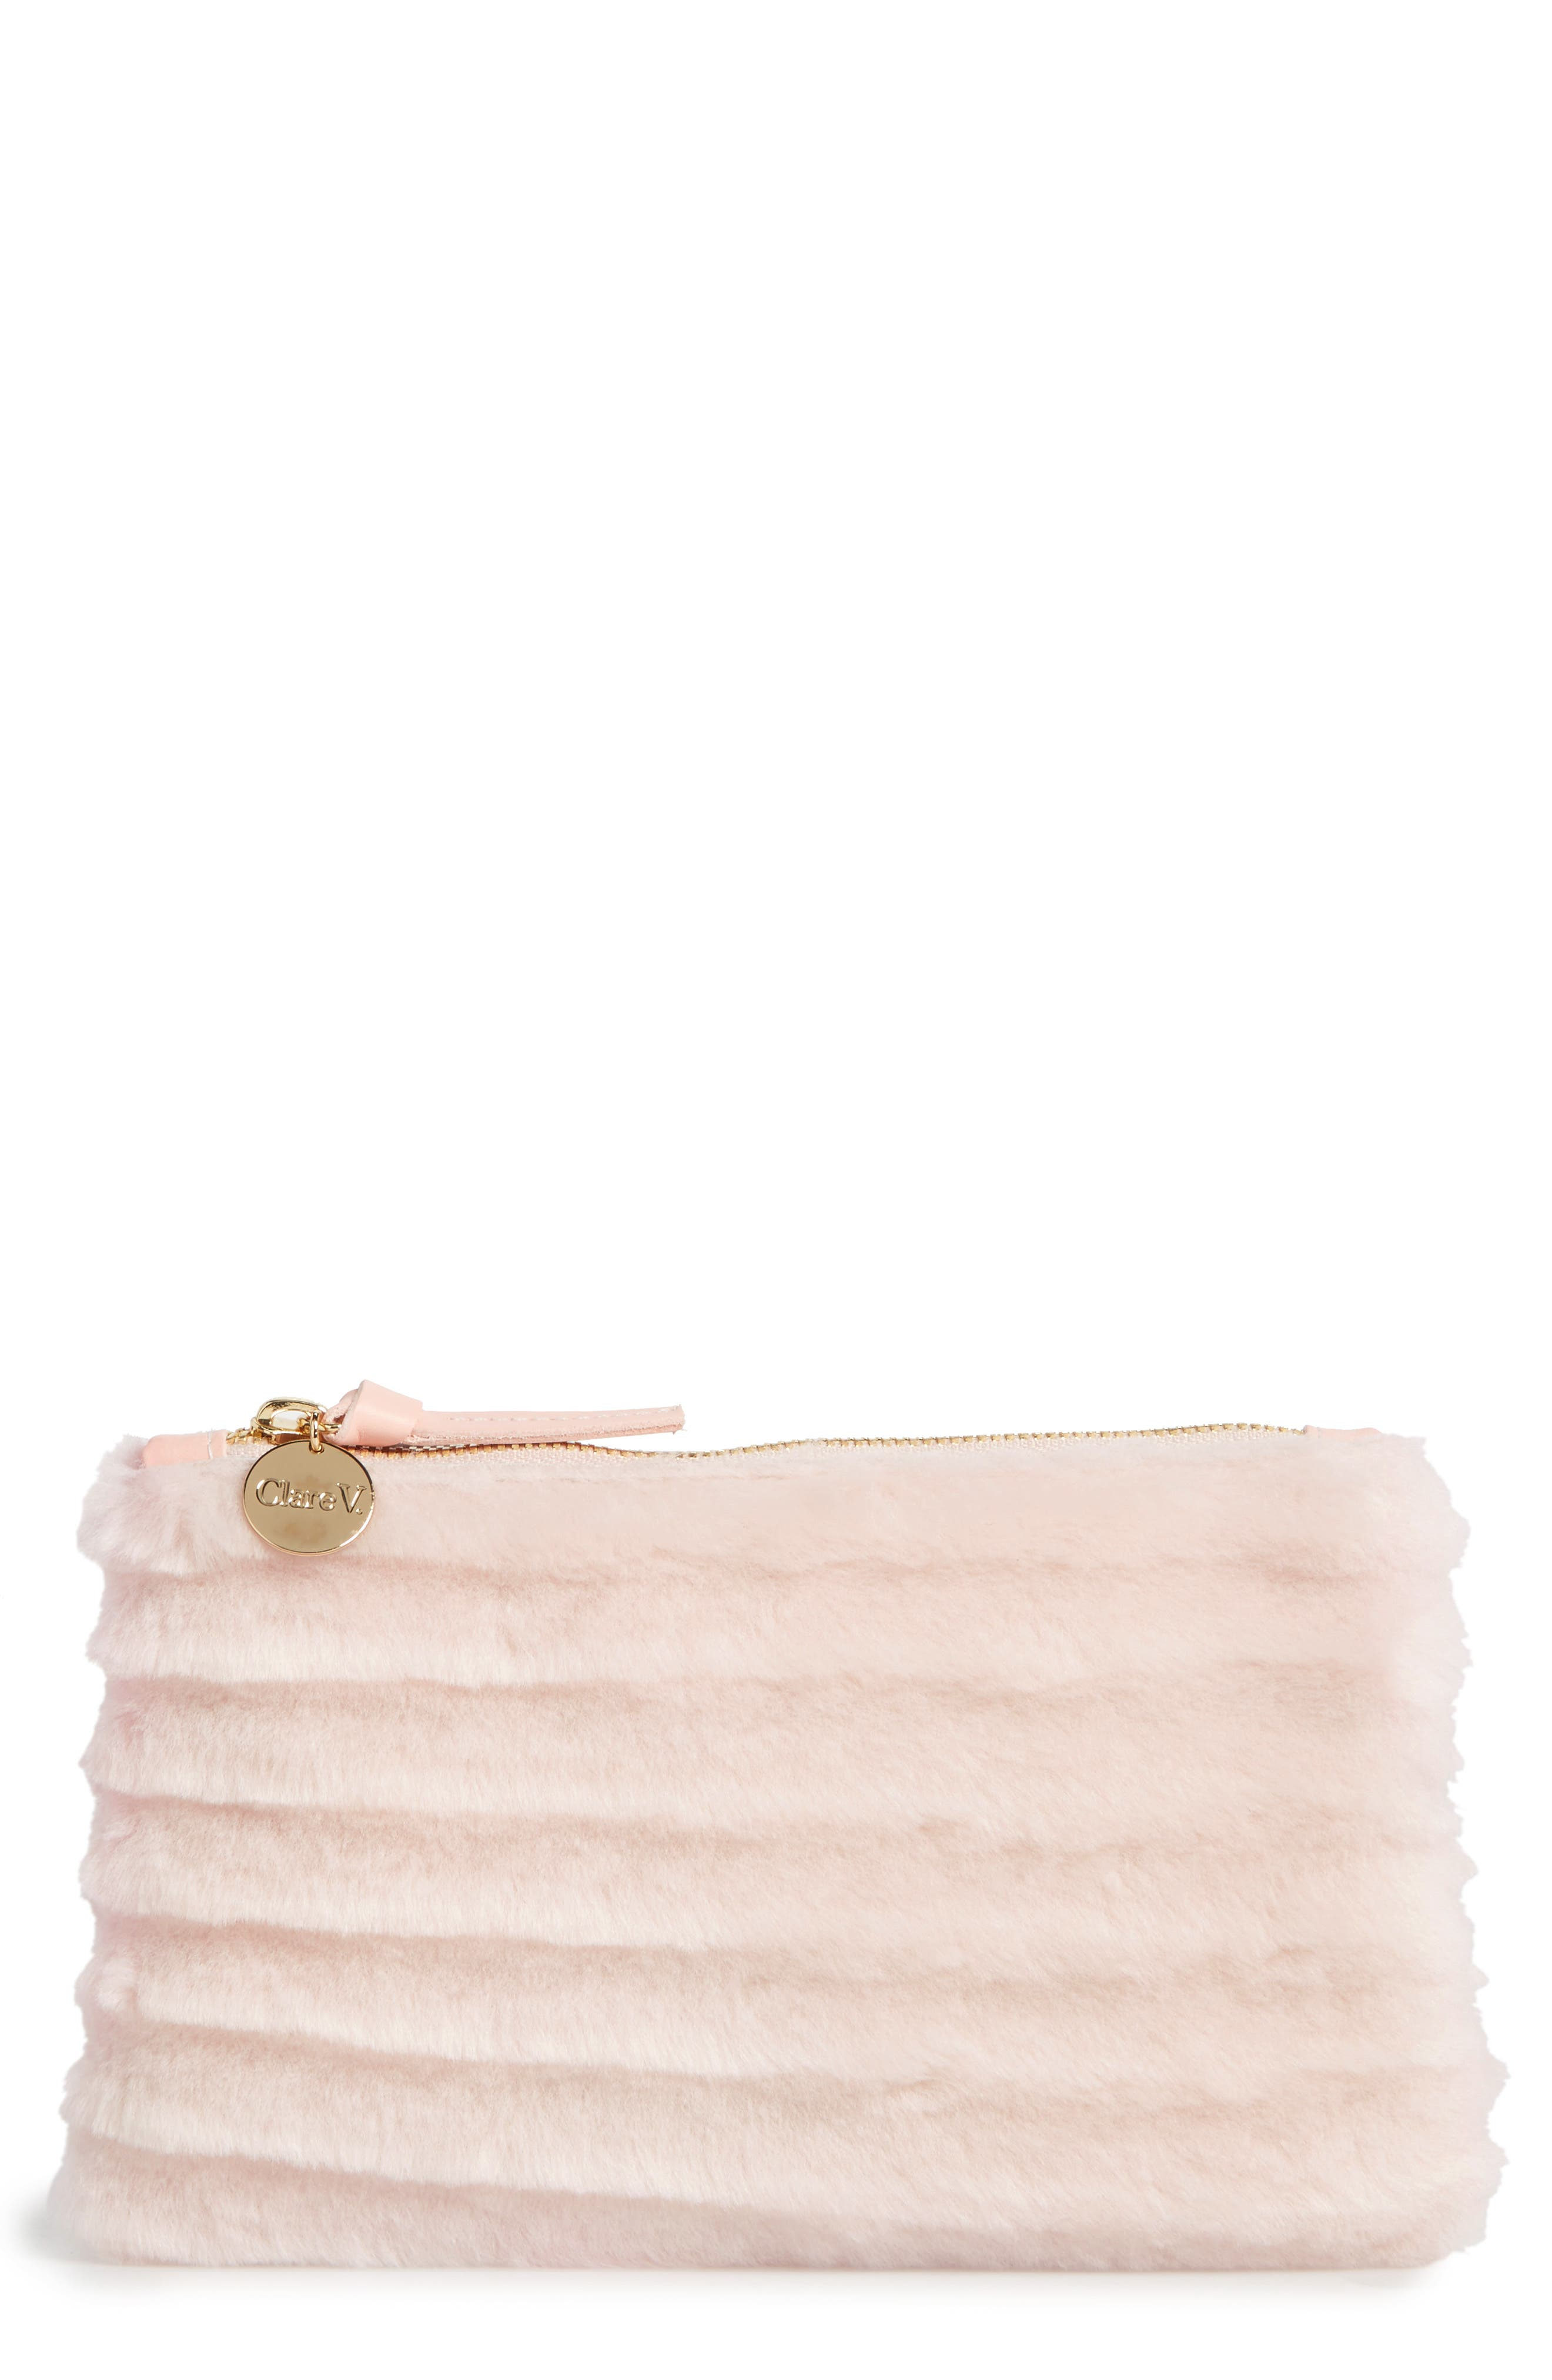 Alternate Image 1 Selected - Clare V. Genuine Shearling Pouch